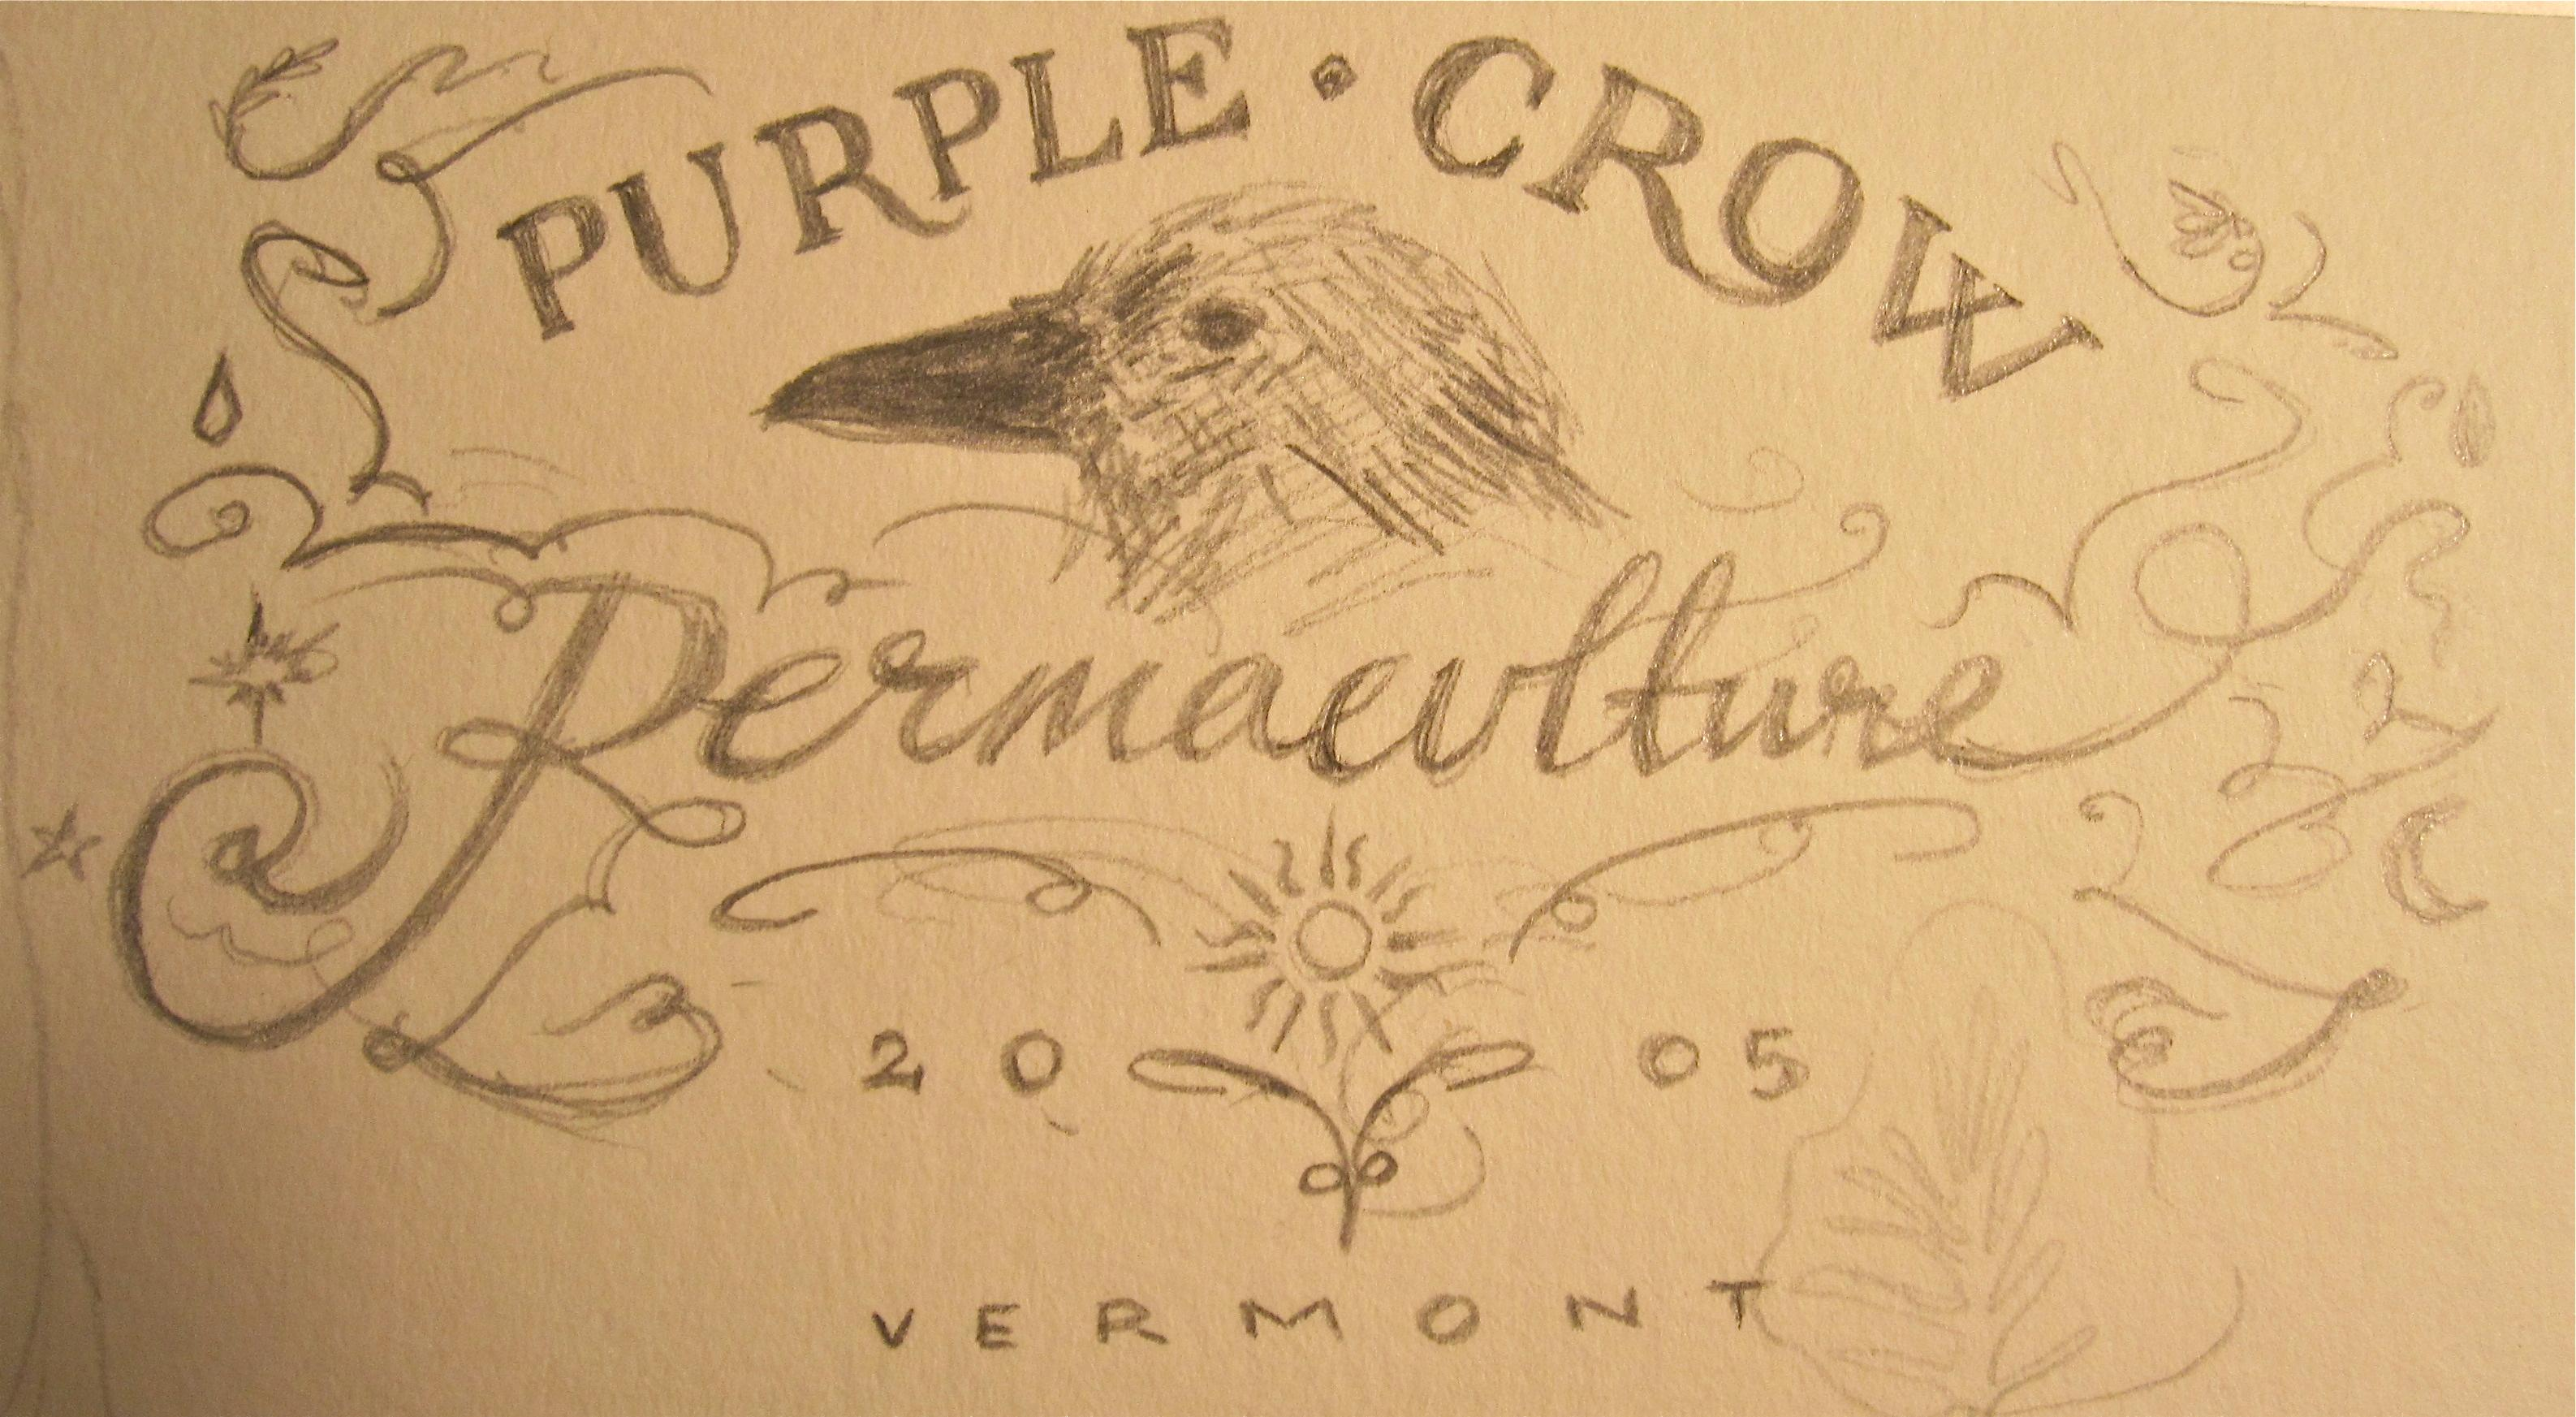 Purple Crow Permaculture - image 2 - student project